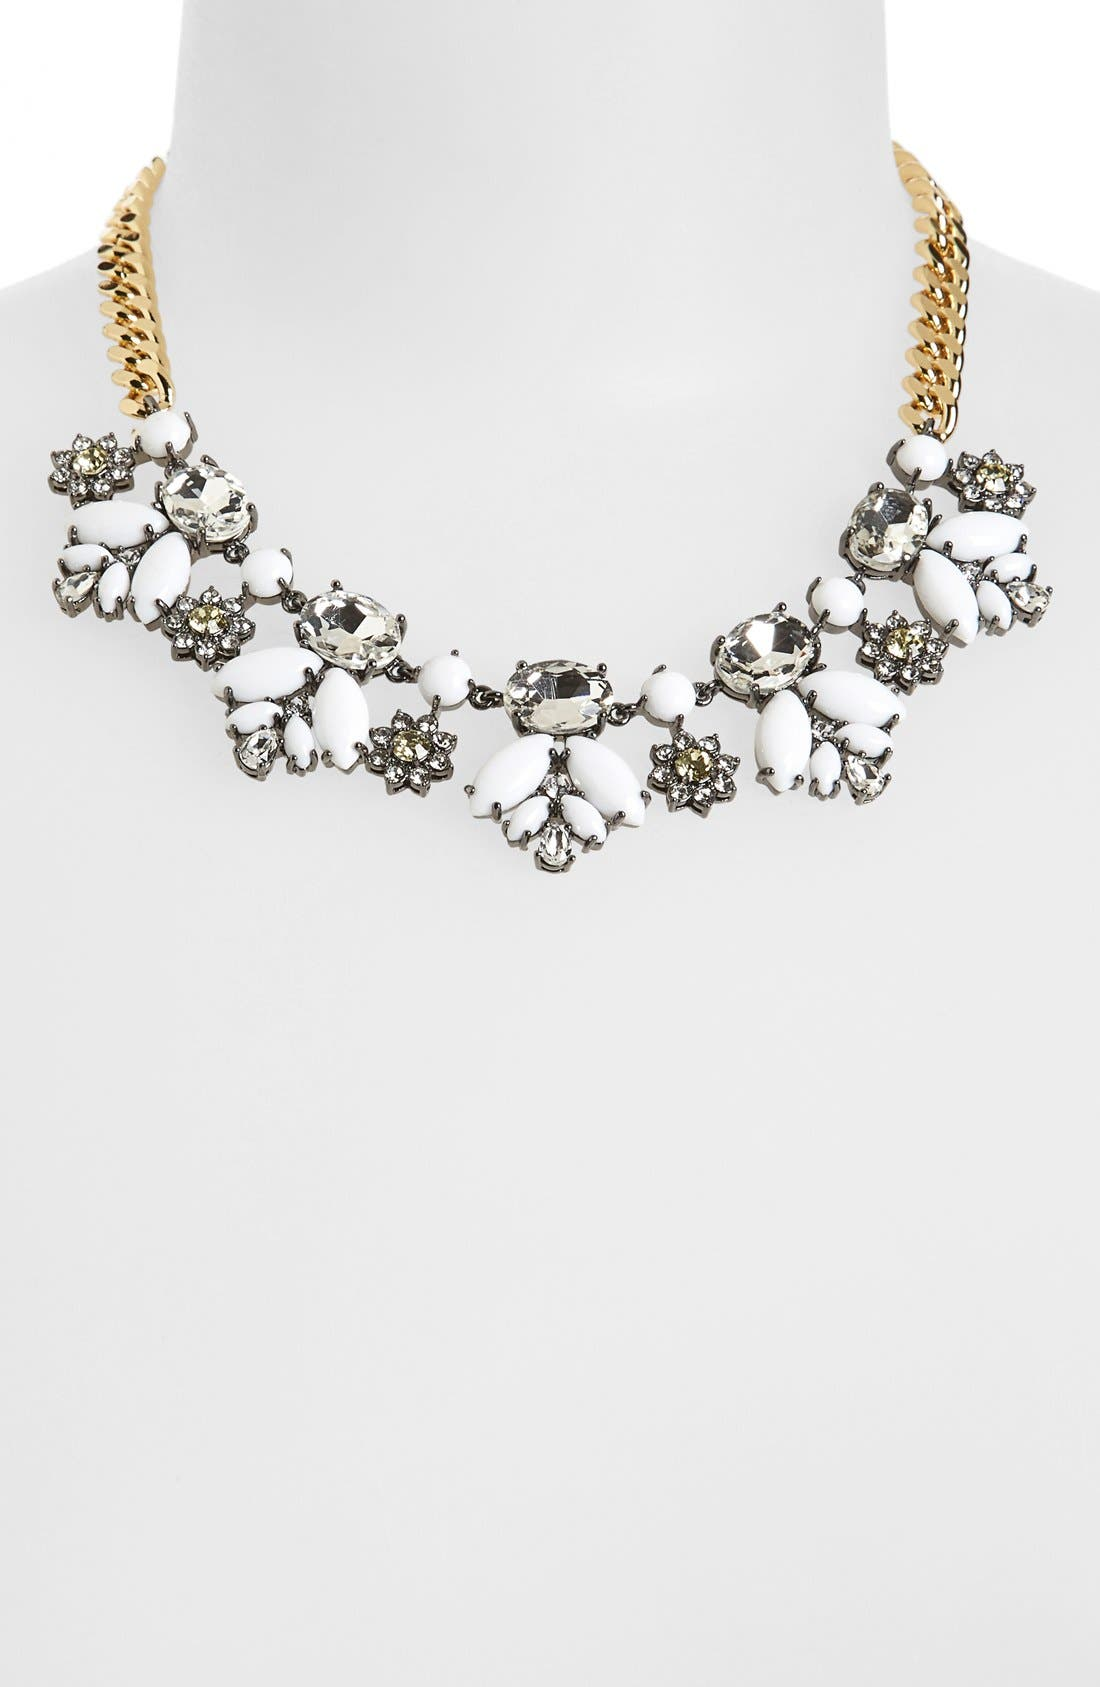 Main Image - Juicy Couture 'Brilliant Blooms' Frontal Necklace